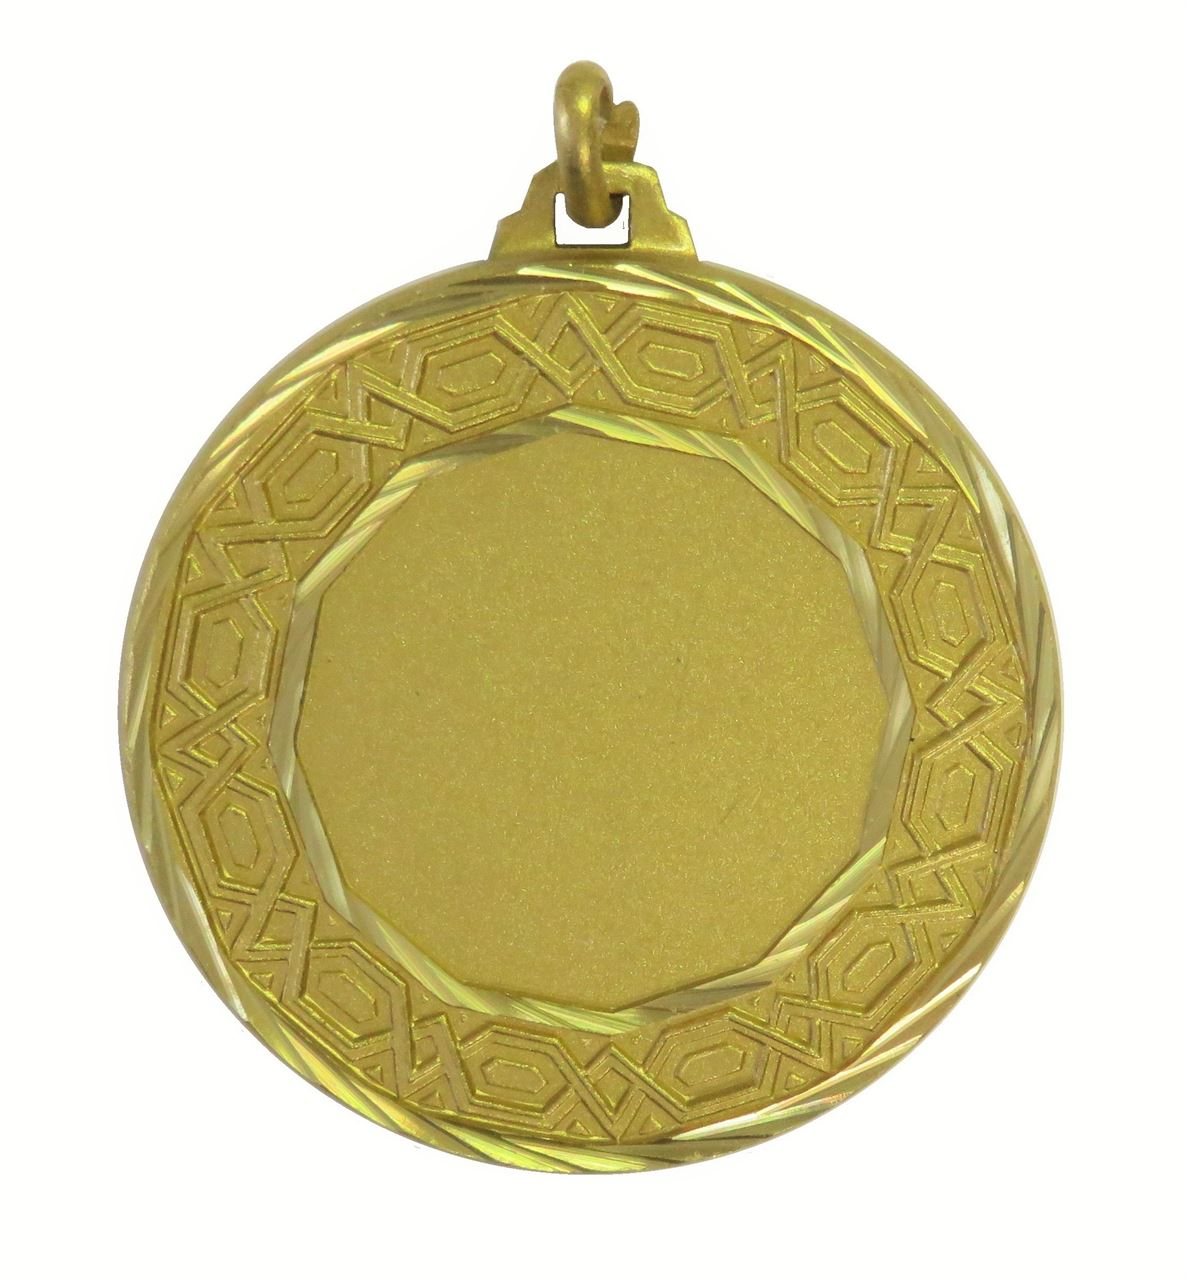 Gold Faceted Nile Medal (size: 42mm) - 5530F